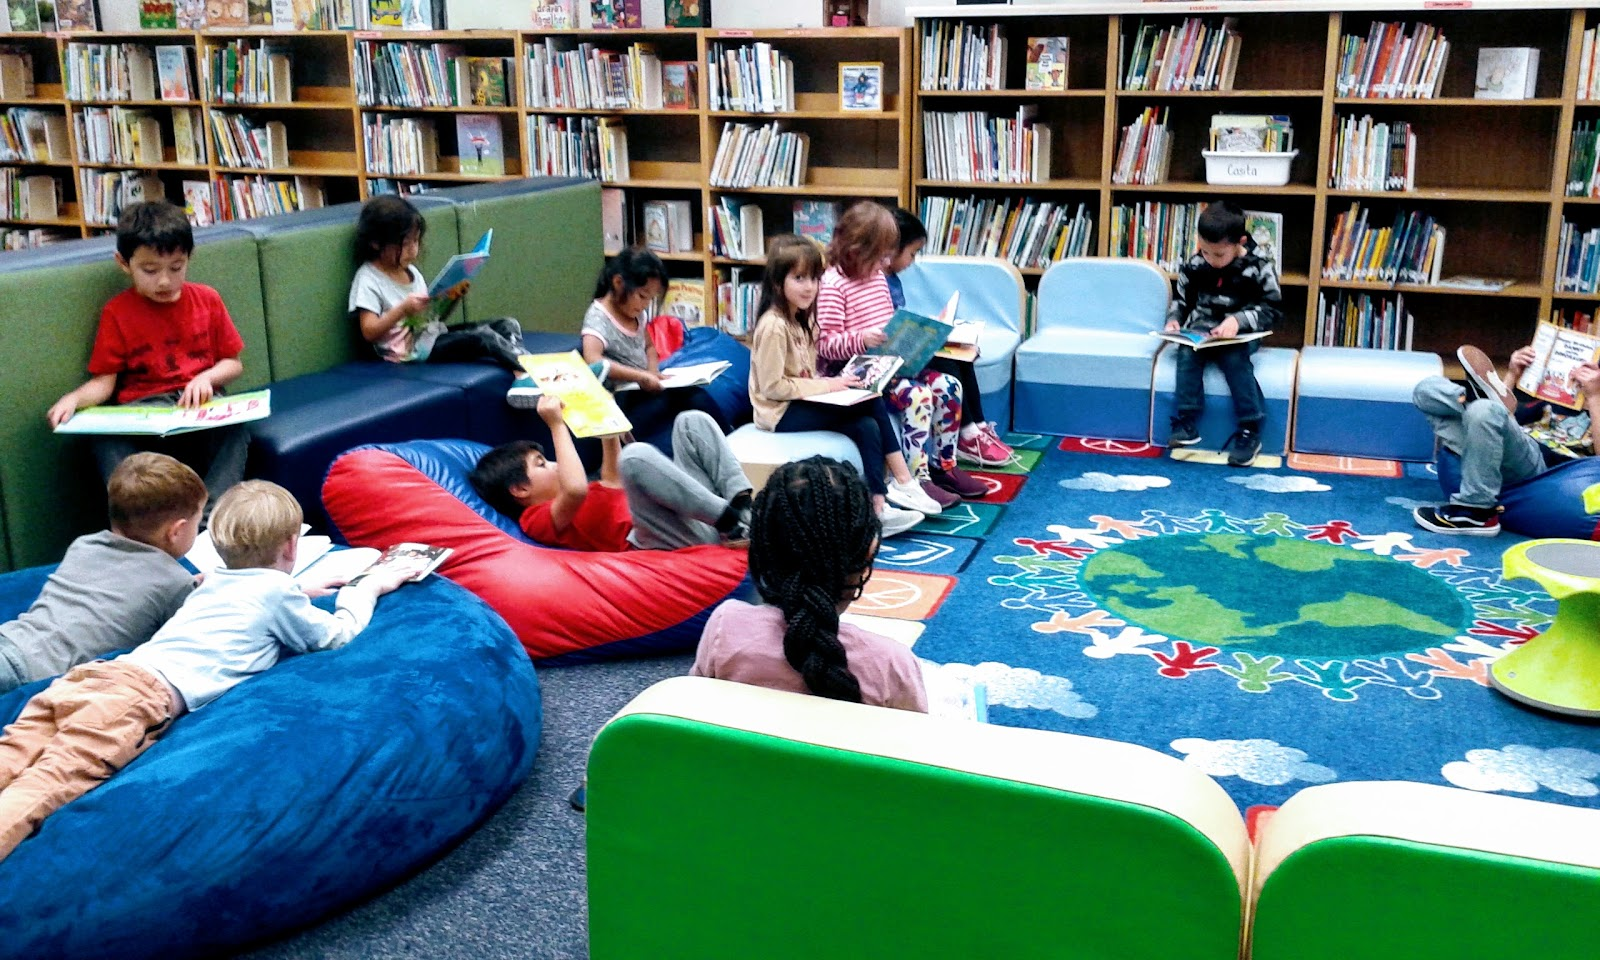 Students enjoying reading books in the library